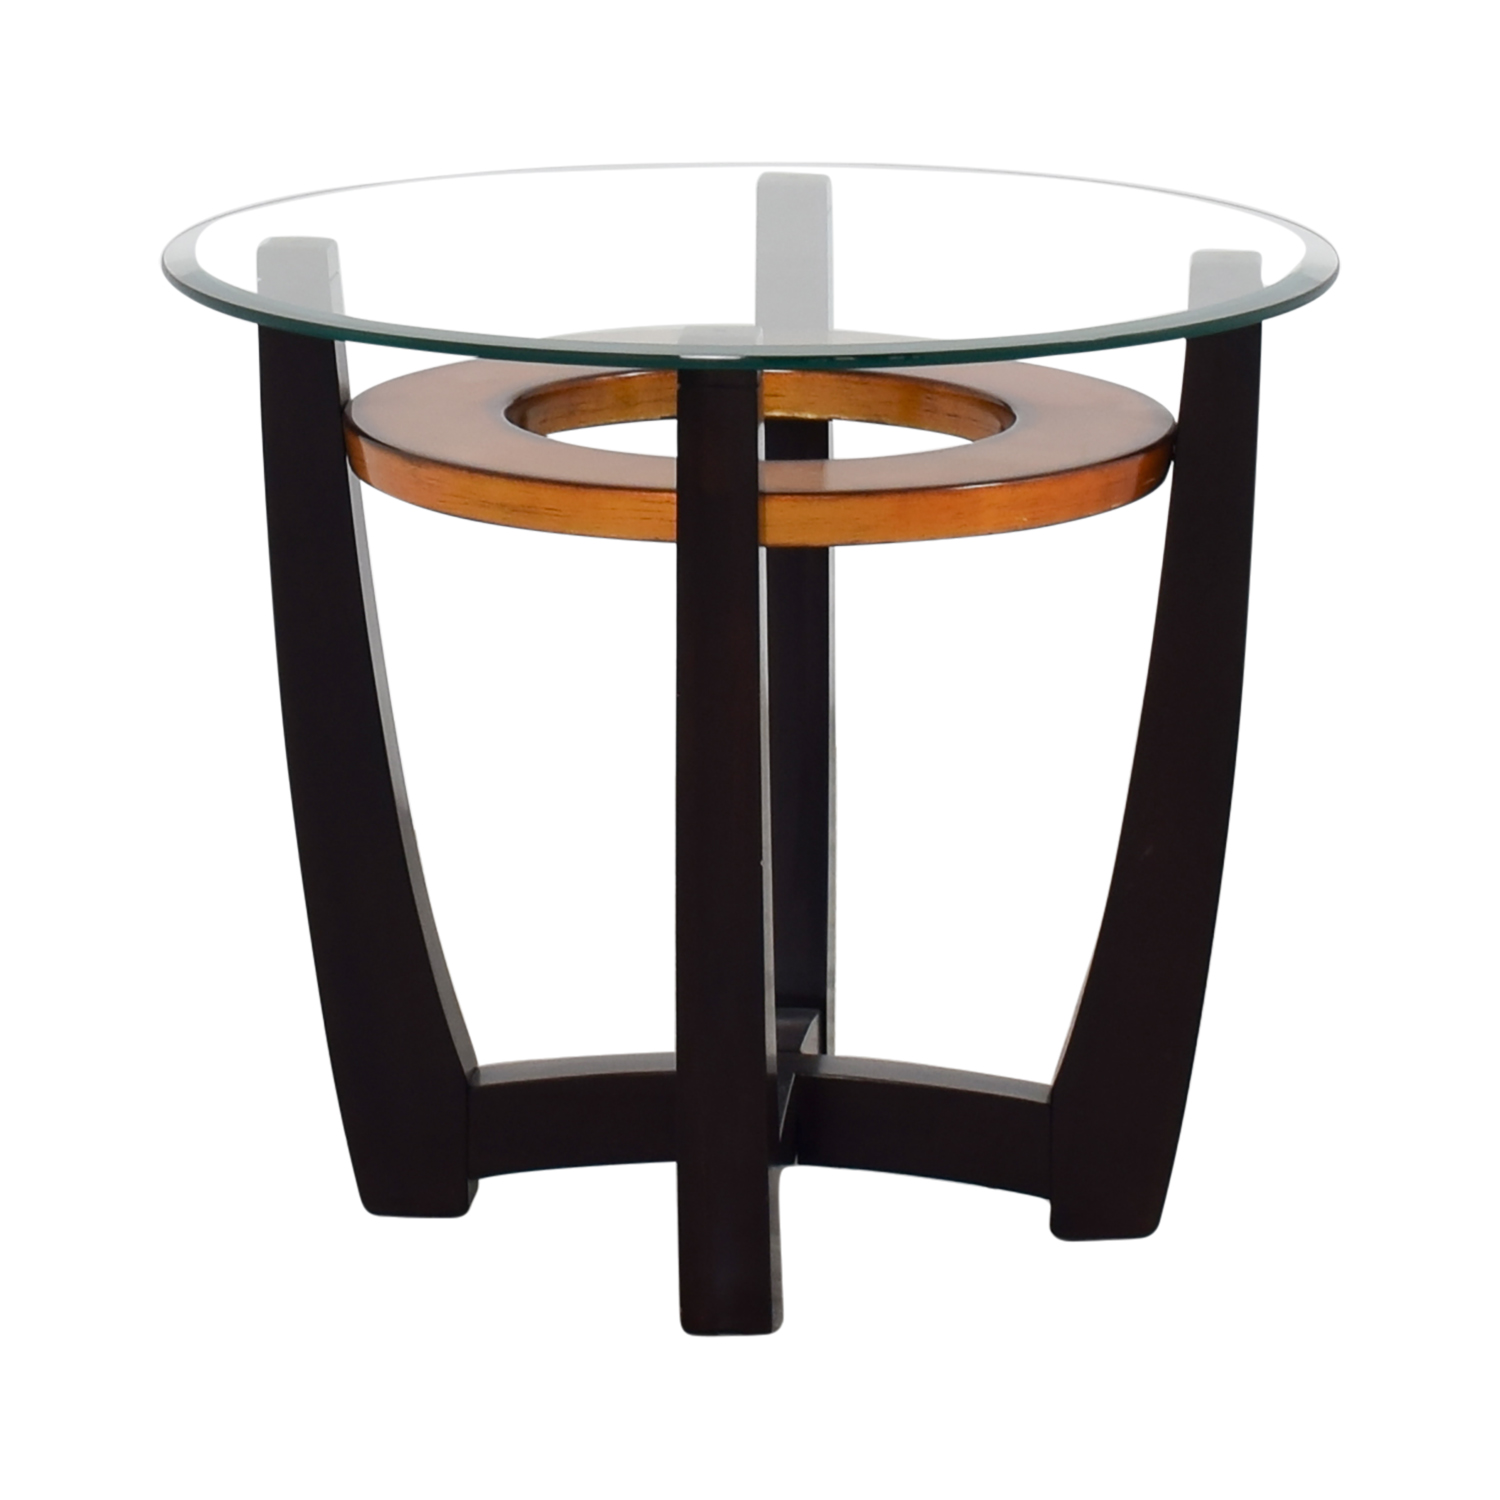 89 off raymour flanigan raymour flanigan round for Glass end tables